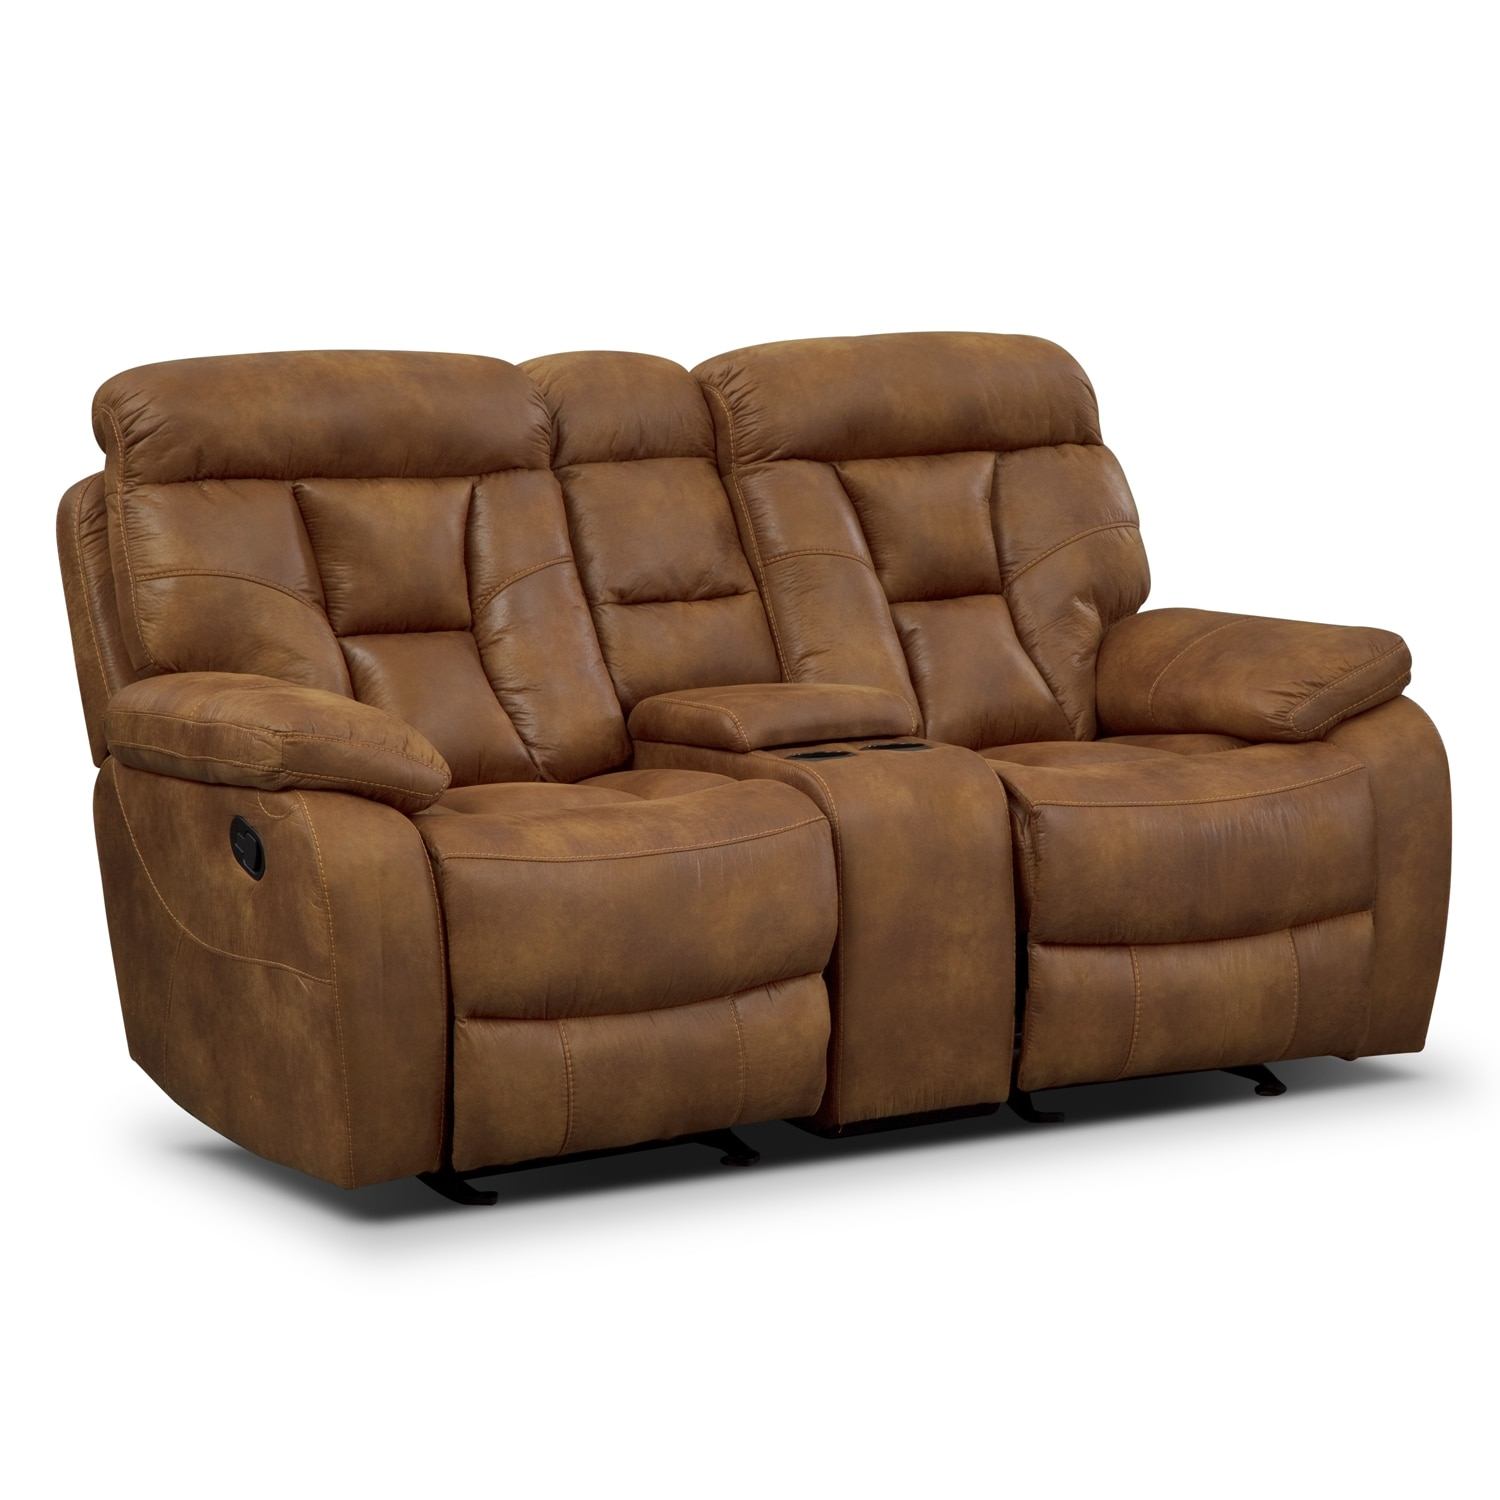 Dakota ii glider reclining loveseat with console value city furniture Reclining loveseat with center console